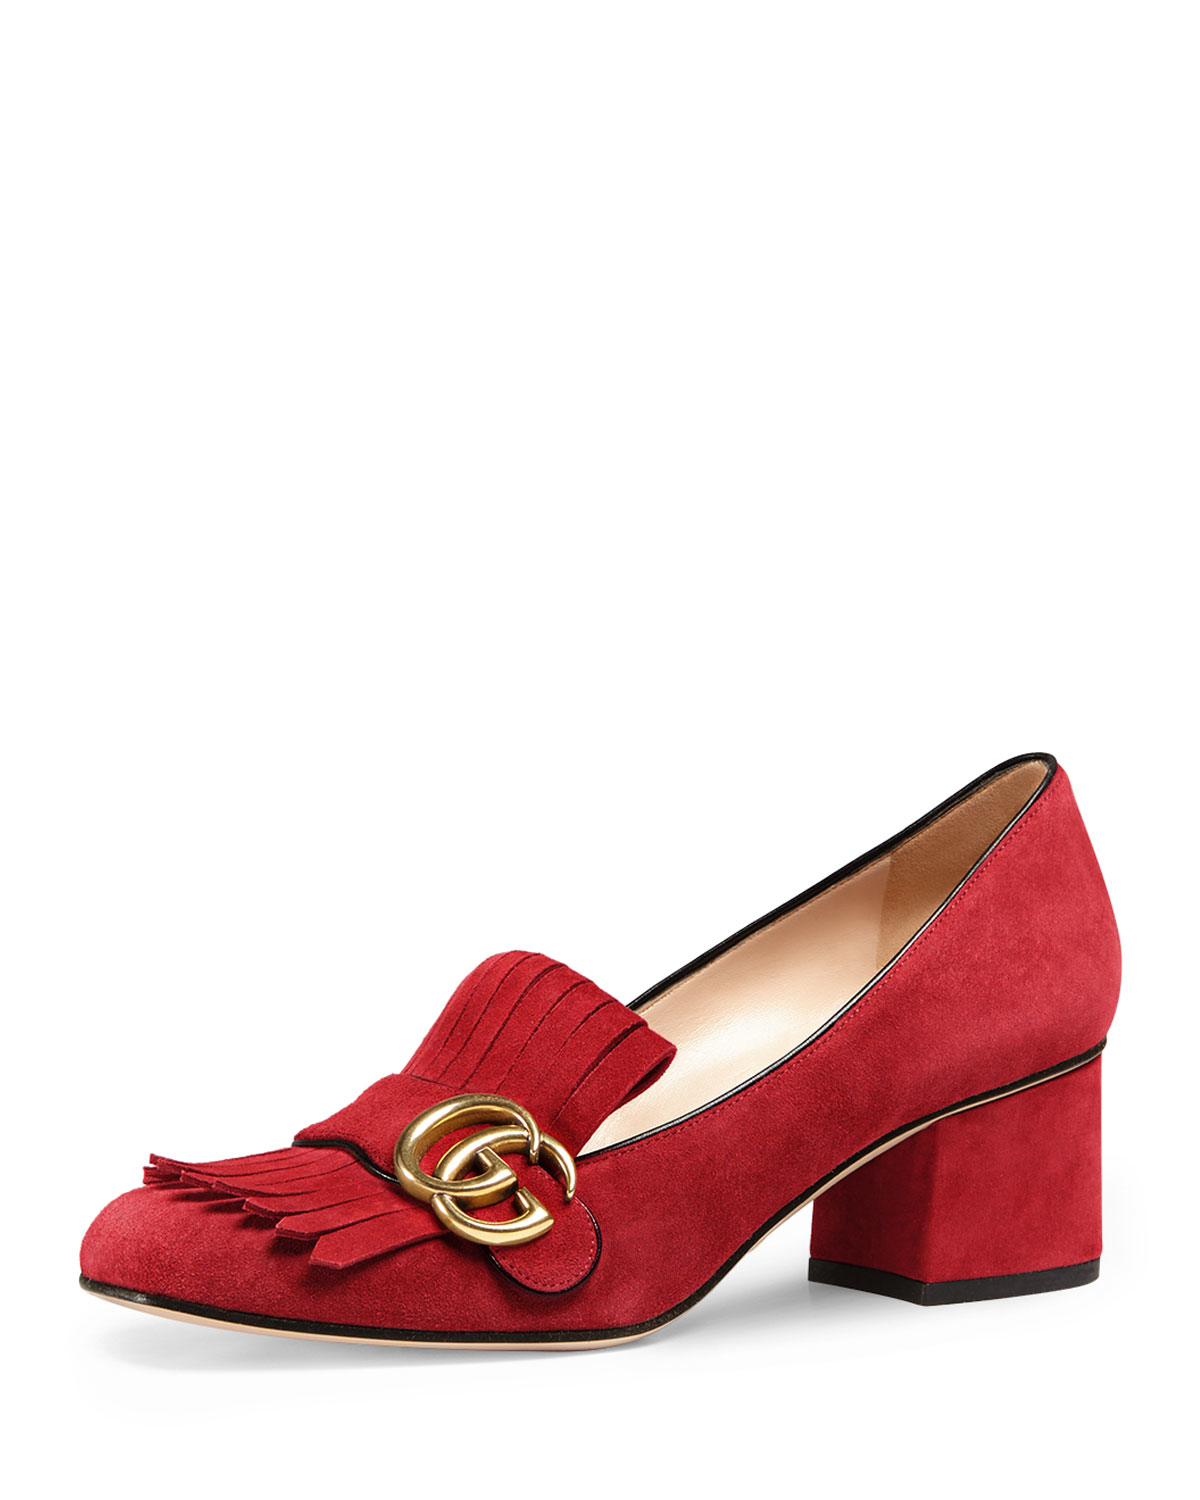 2a7ffb588b0 Lyst - Gucci Marmont Suede Loafers in Red